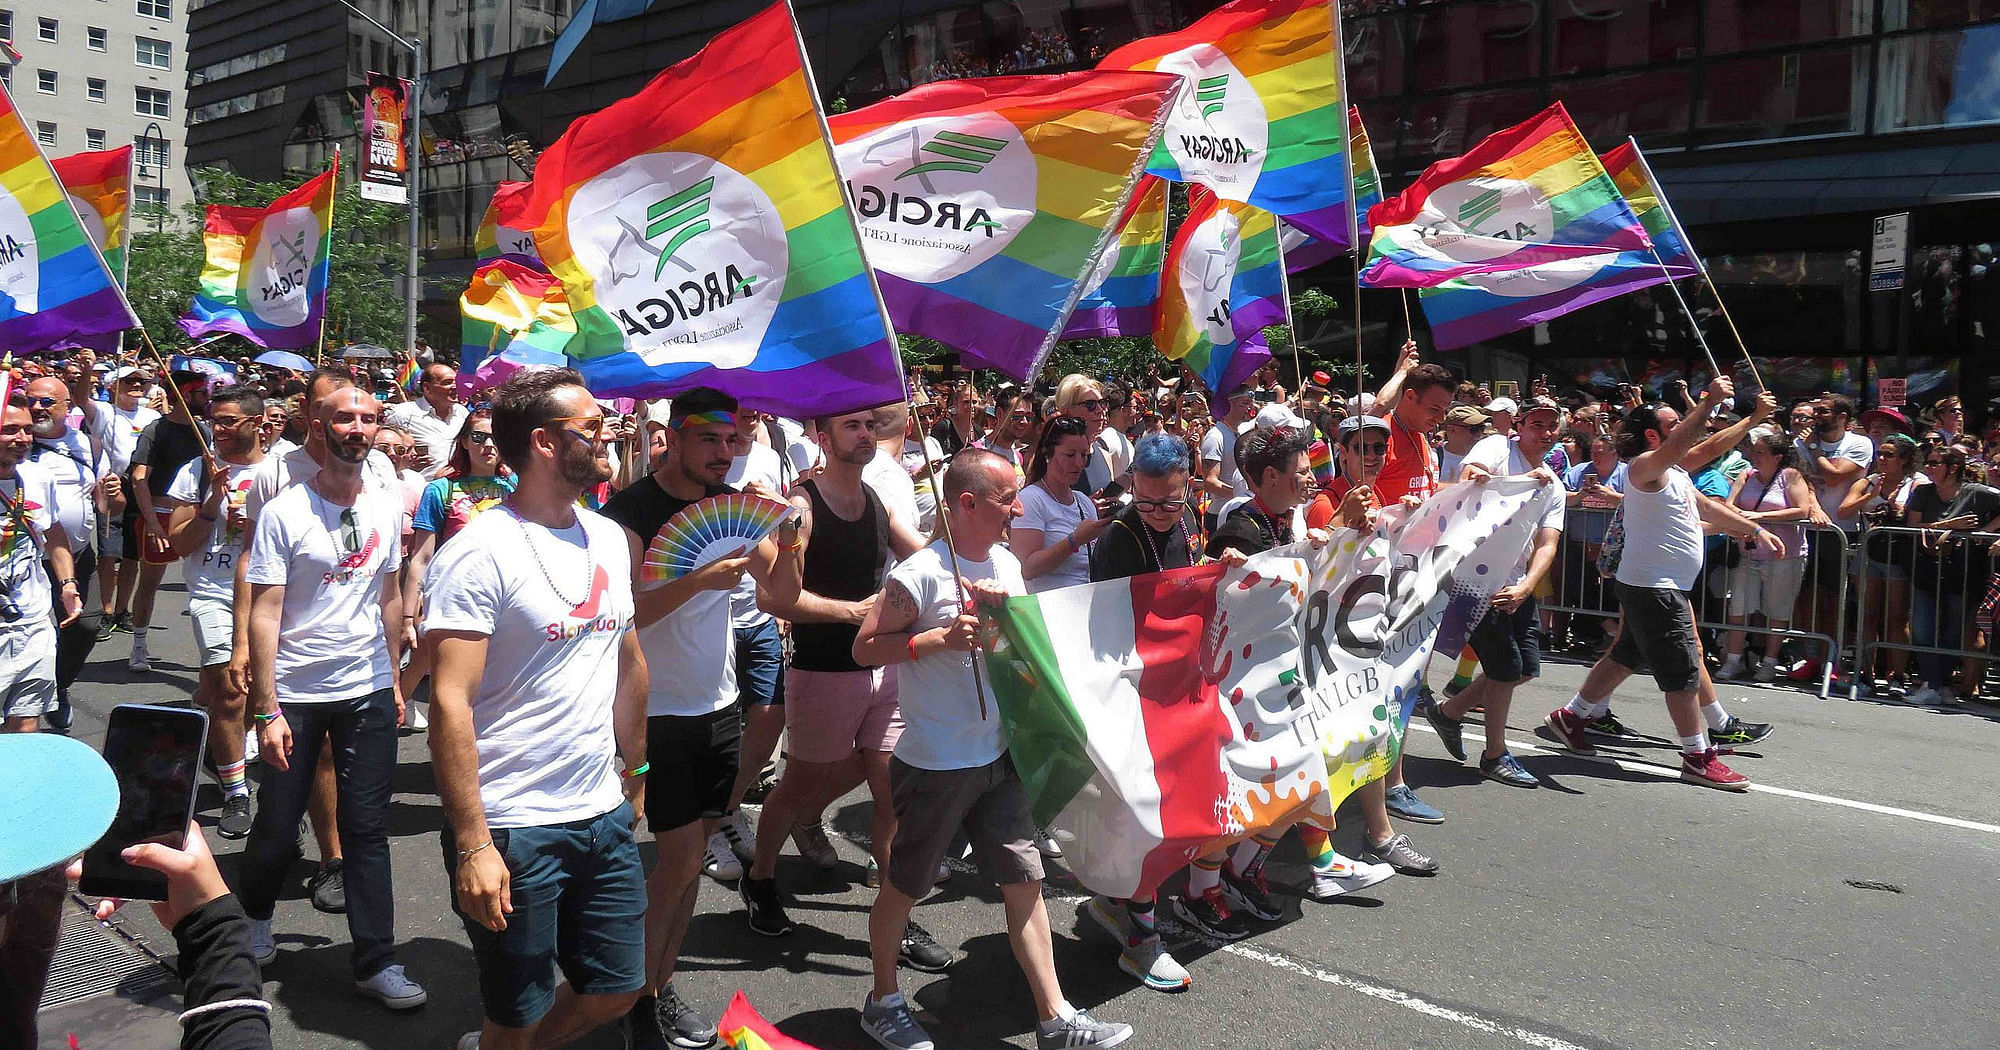 The Sad Truth About How Italian Politics Are Holding Up LGBTQ Rights